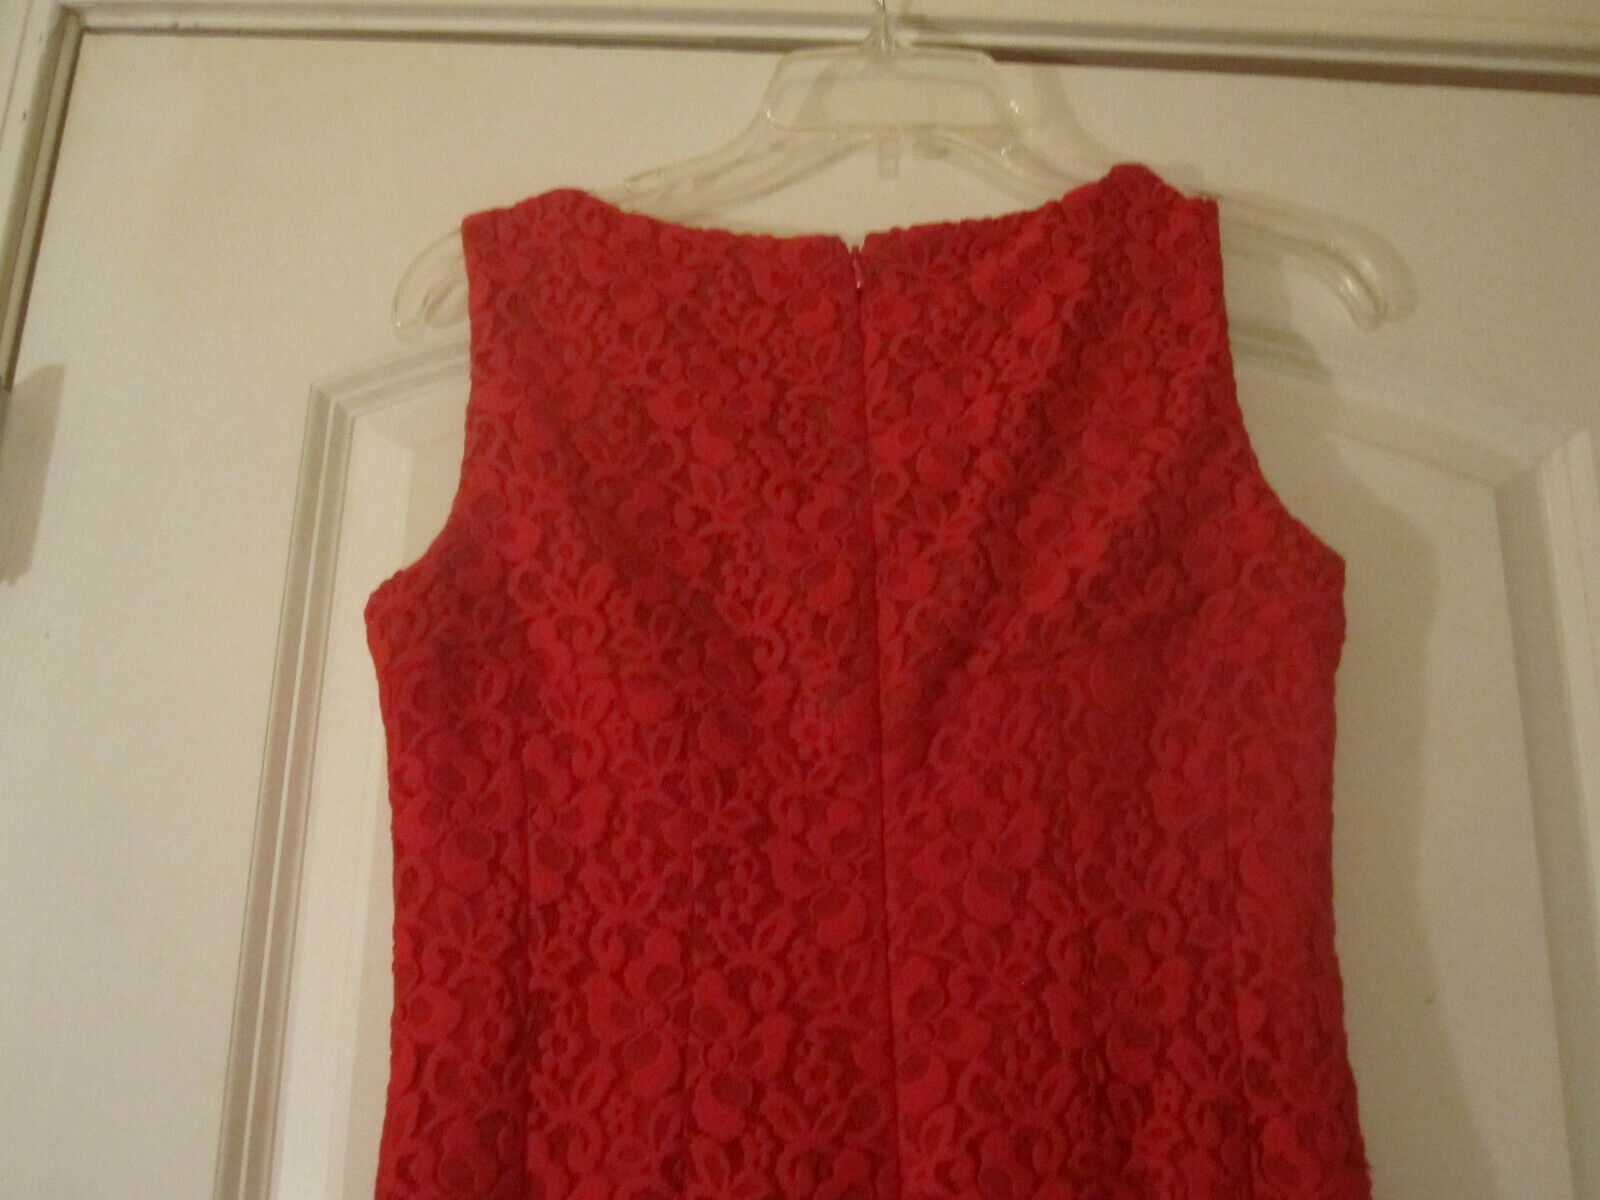 Anne Klein Womens Red Crochet Dress Lined Sleeveless Size 2 image 6